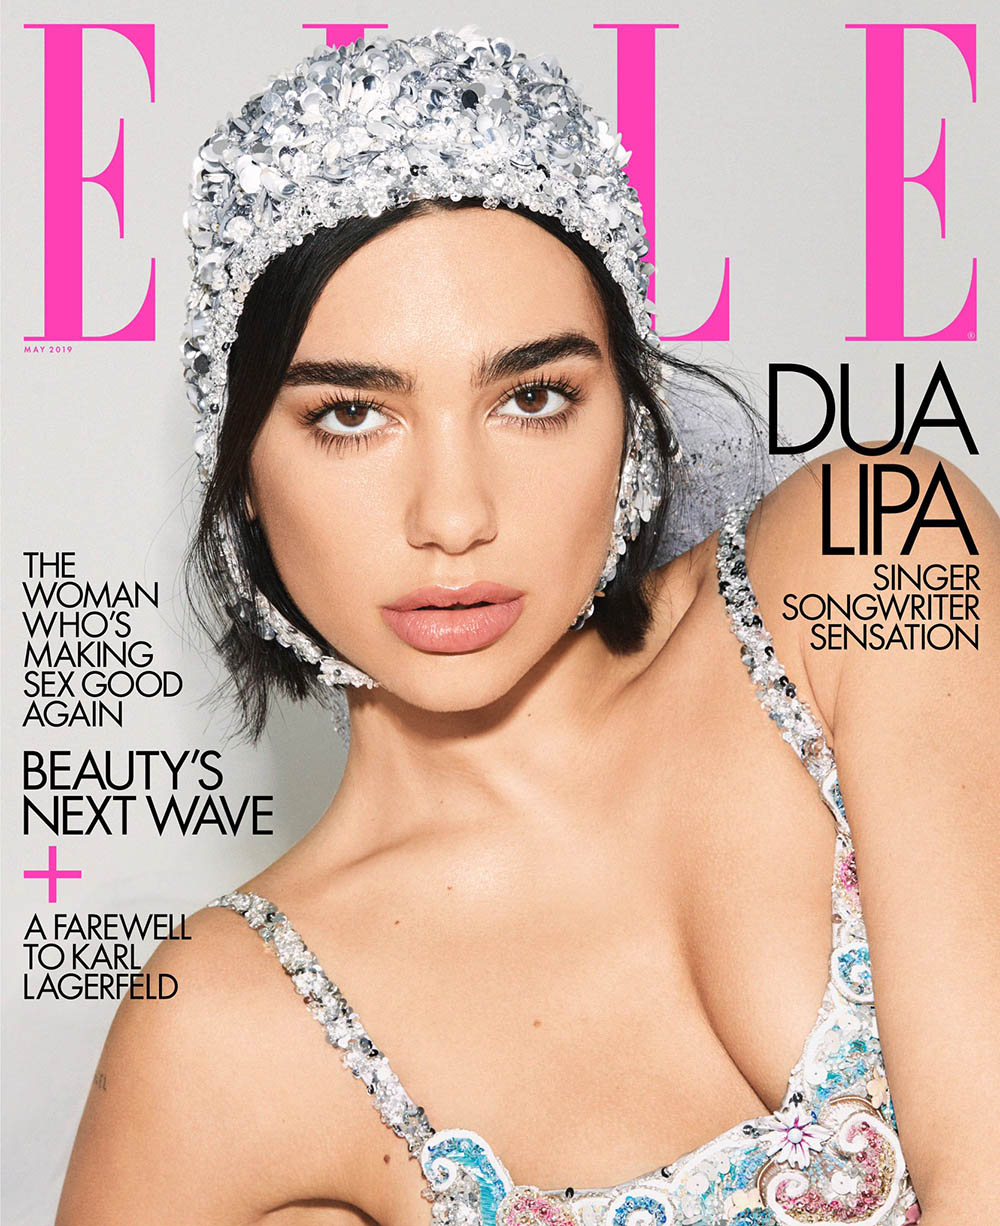 Dua Lipa covers Elle US May 2019 by Carin Backoff